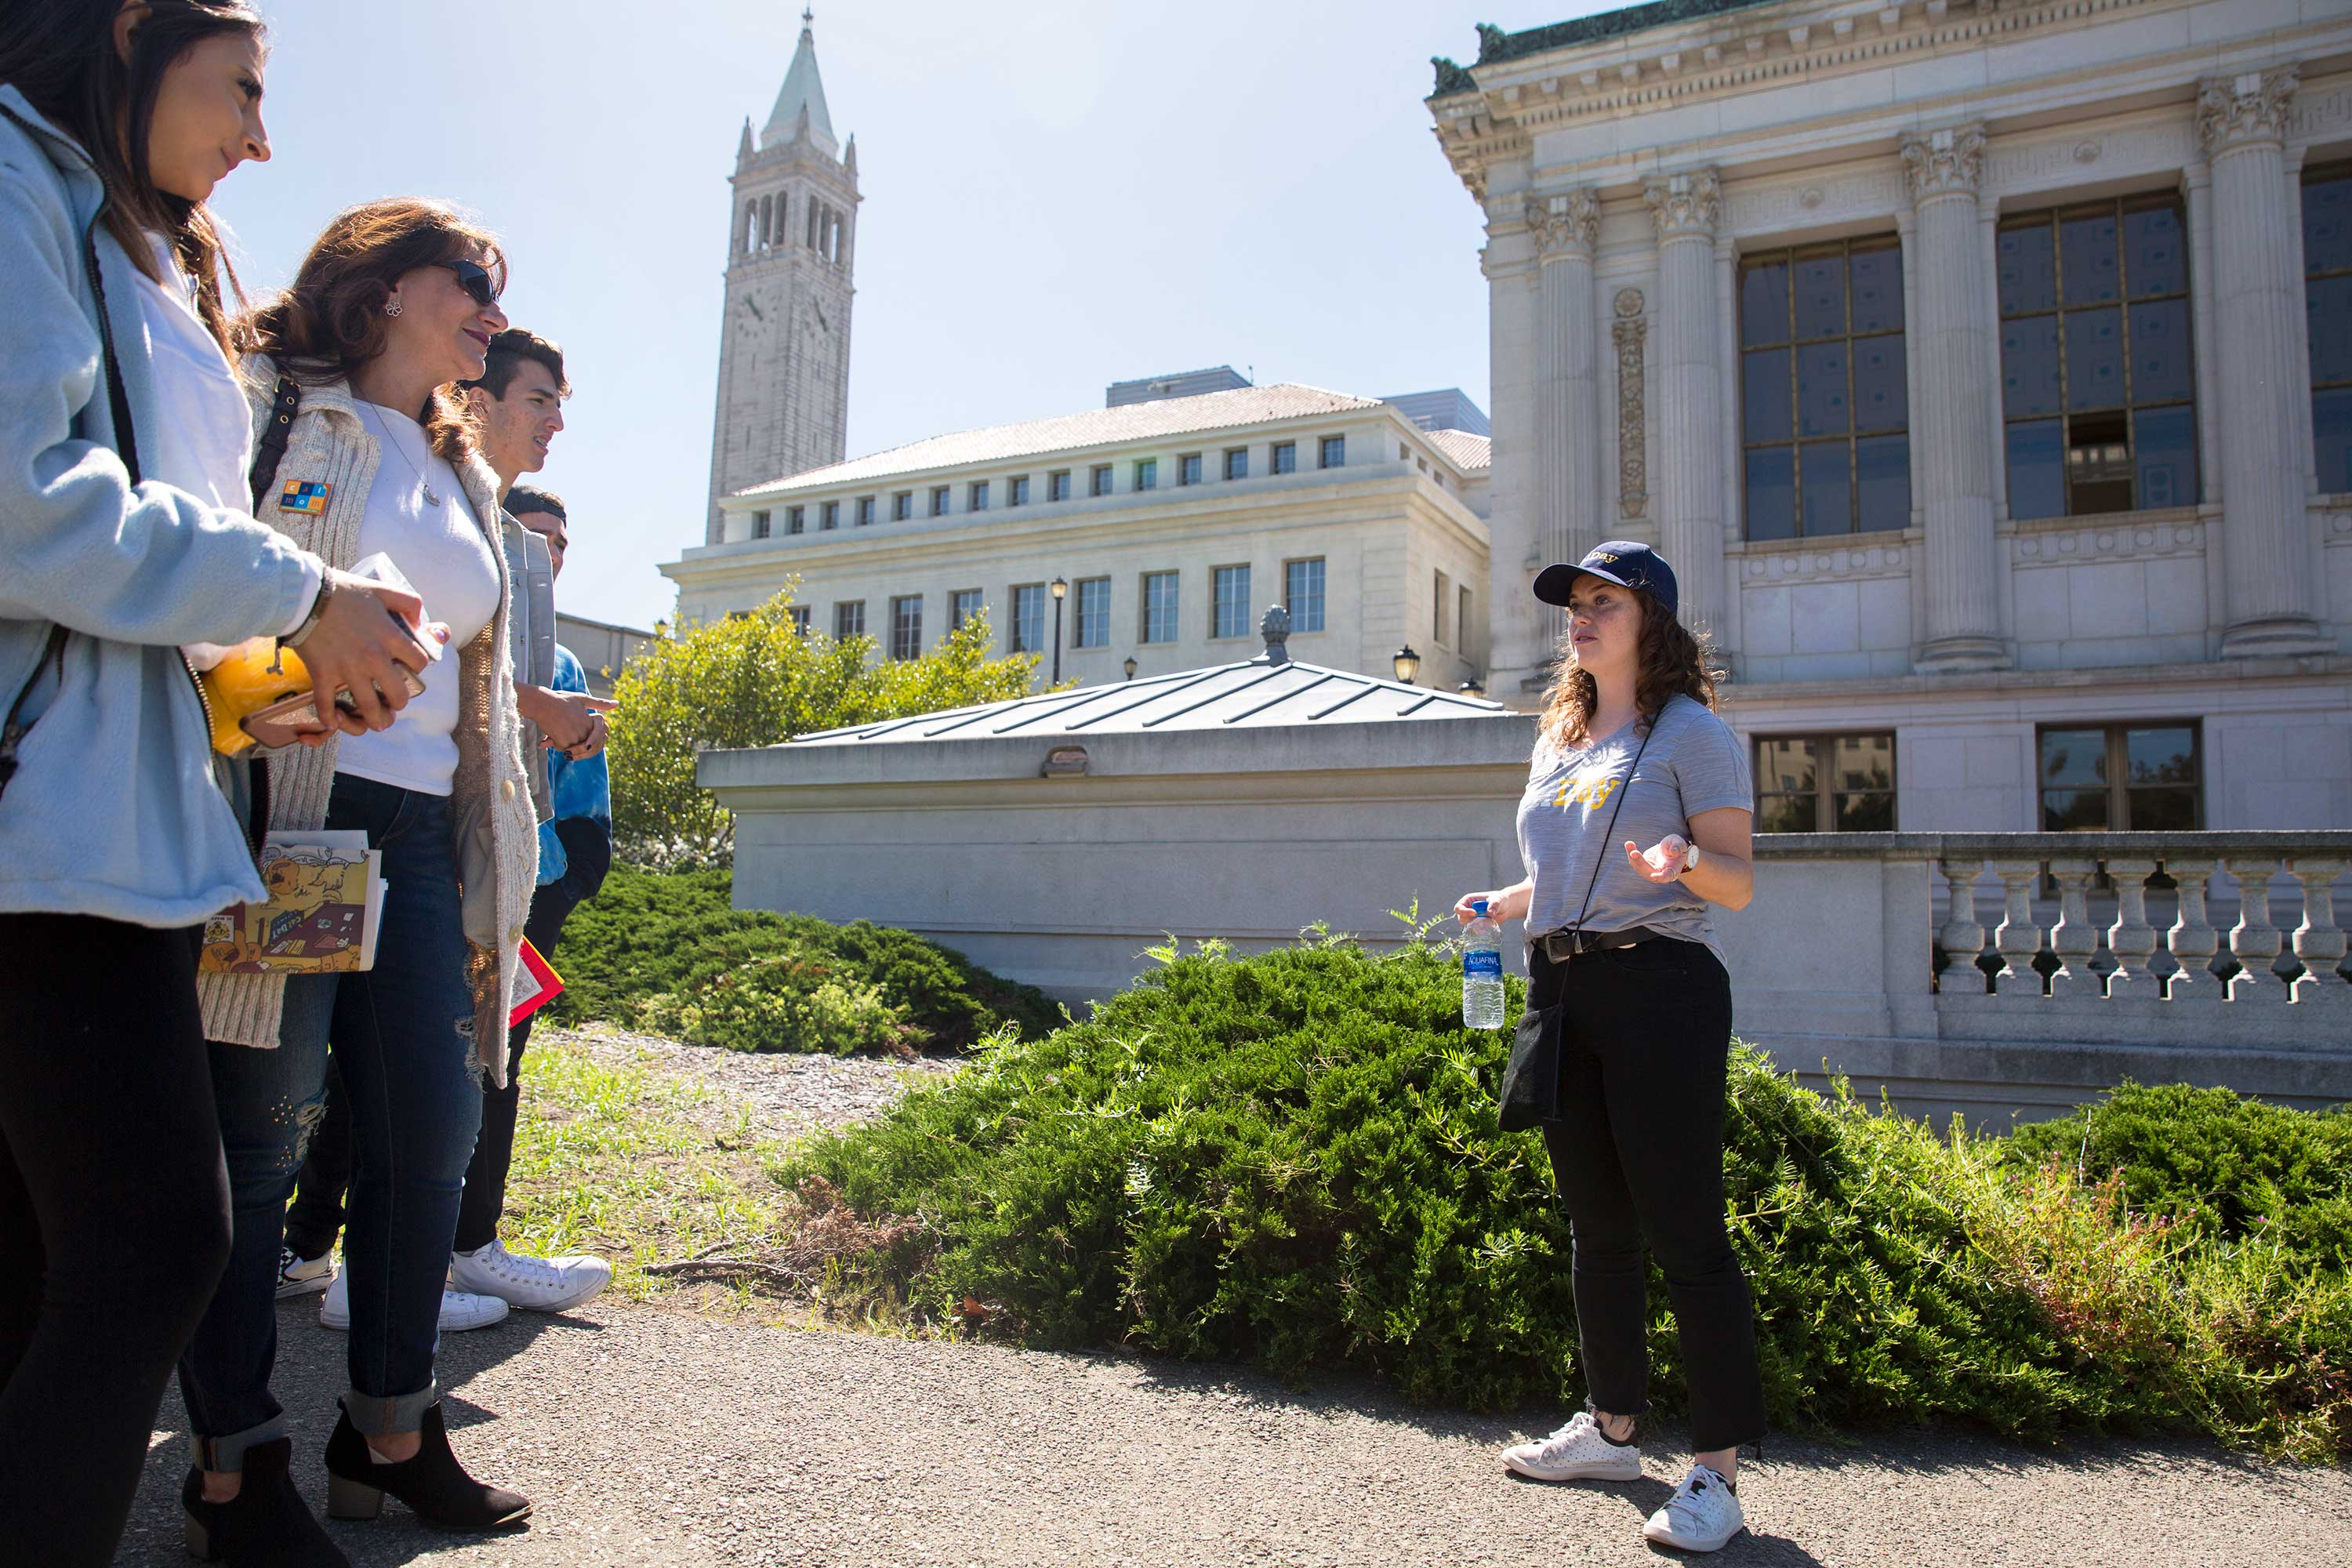 A tour guide giving a tour on the UC Berkeley campus.